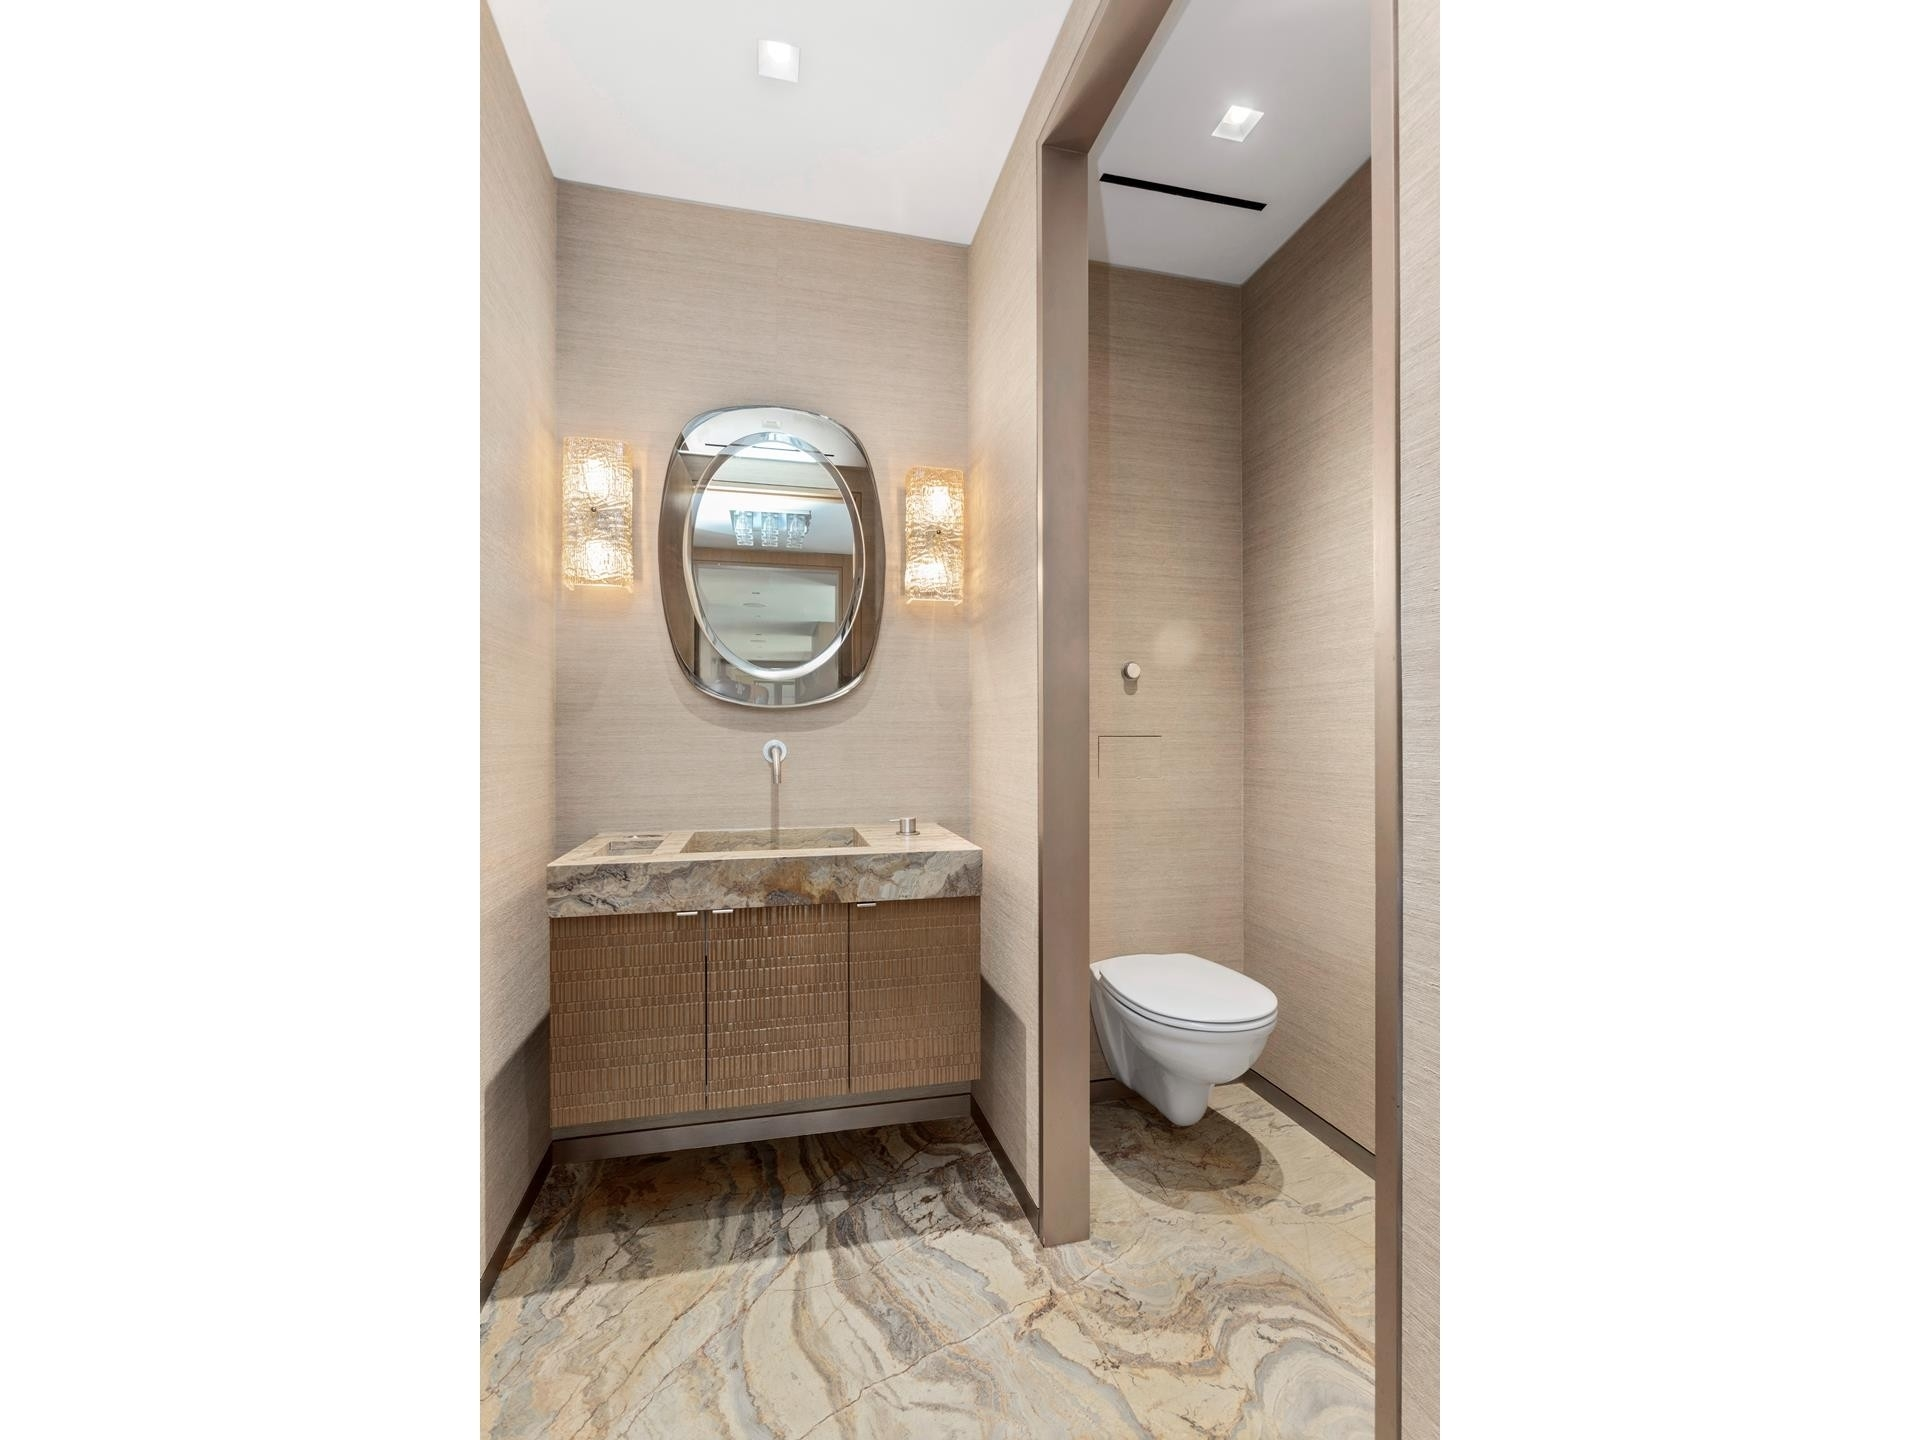 15. Condominiums for Sale at 279 CENTRAL PARK W, PHBA Upper West Side, New York, NY 10024